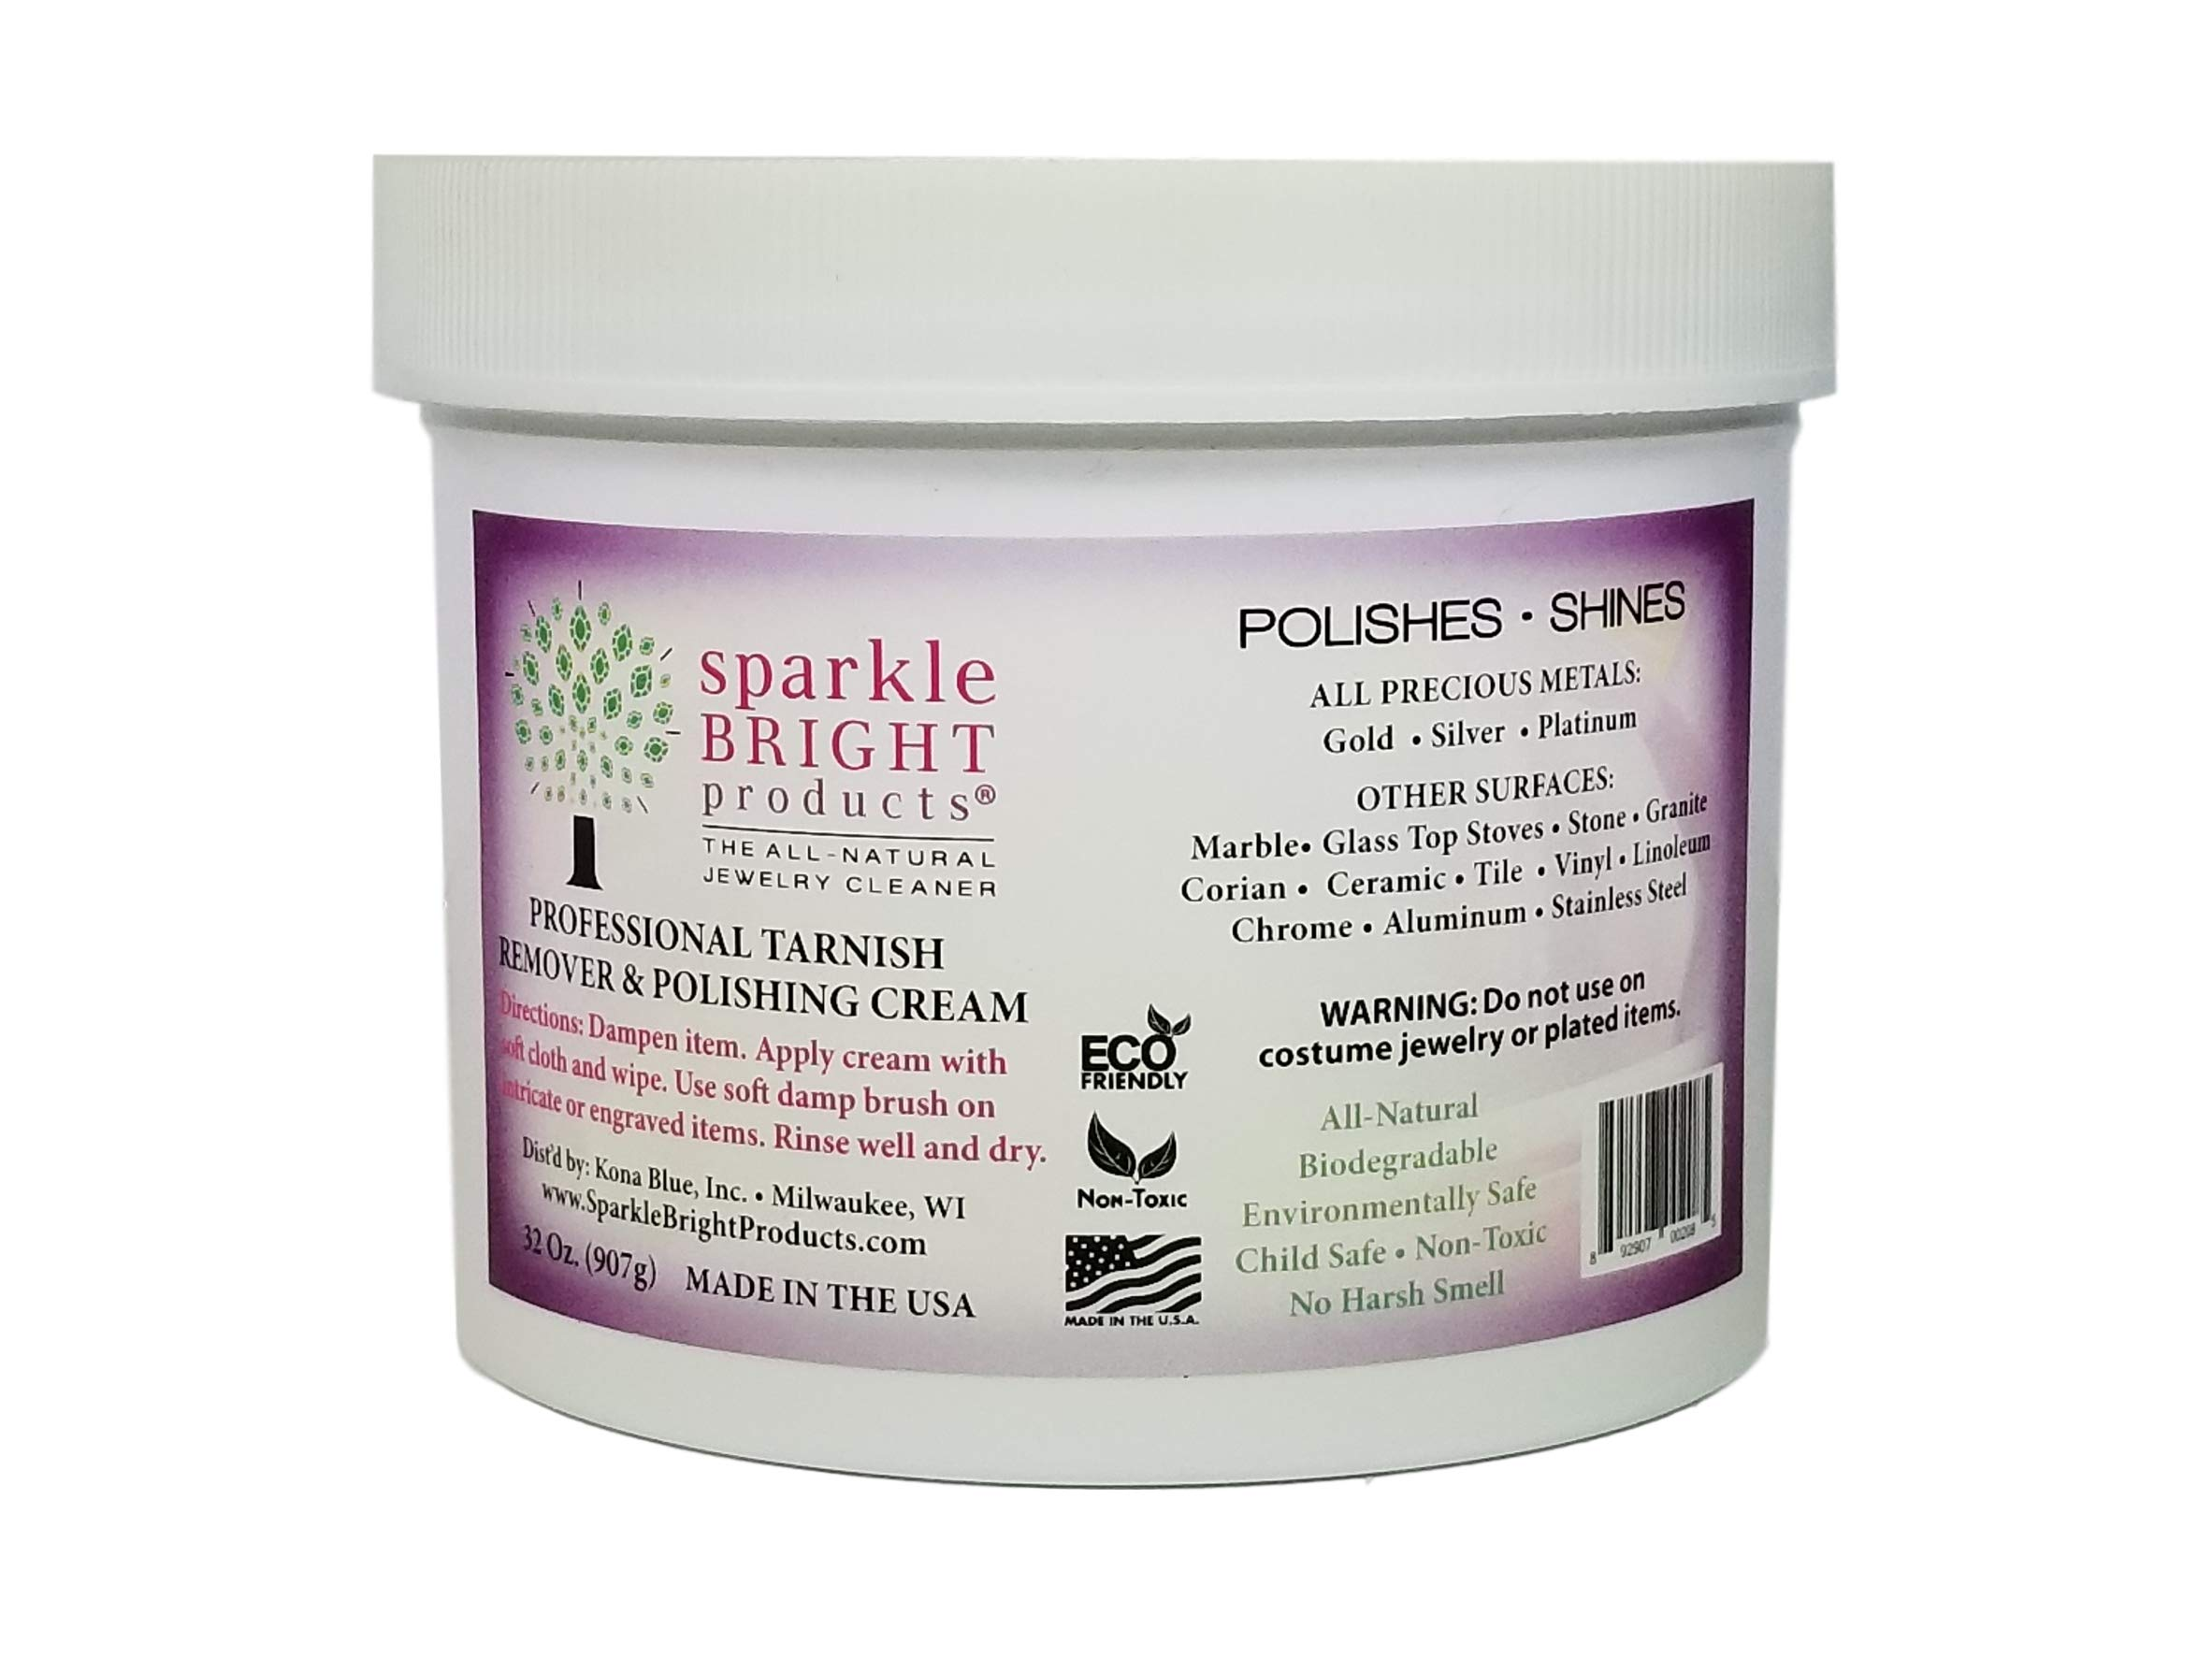 Sparkle Bright Products All-Natural Jewelry Cleaner | Tarnish Remover & Polishing Cream, 32oz. (907g) | Gold, Silver, Platinum Precious Metal Polish for Jewelry Cleaning